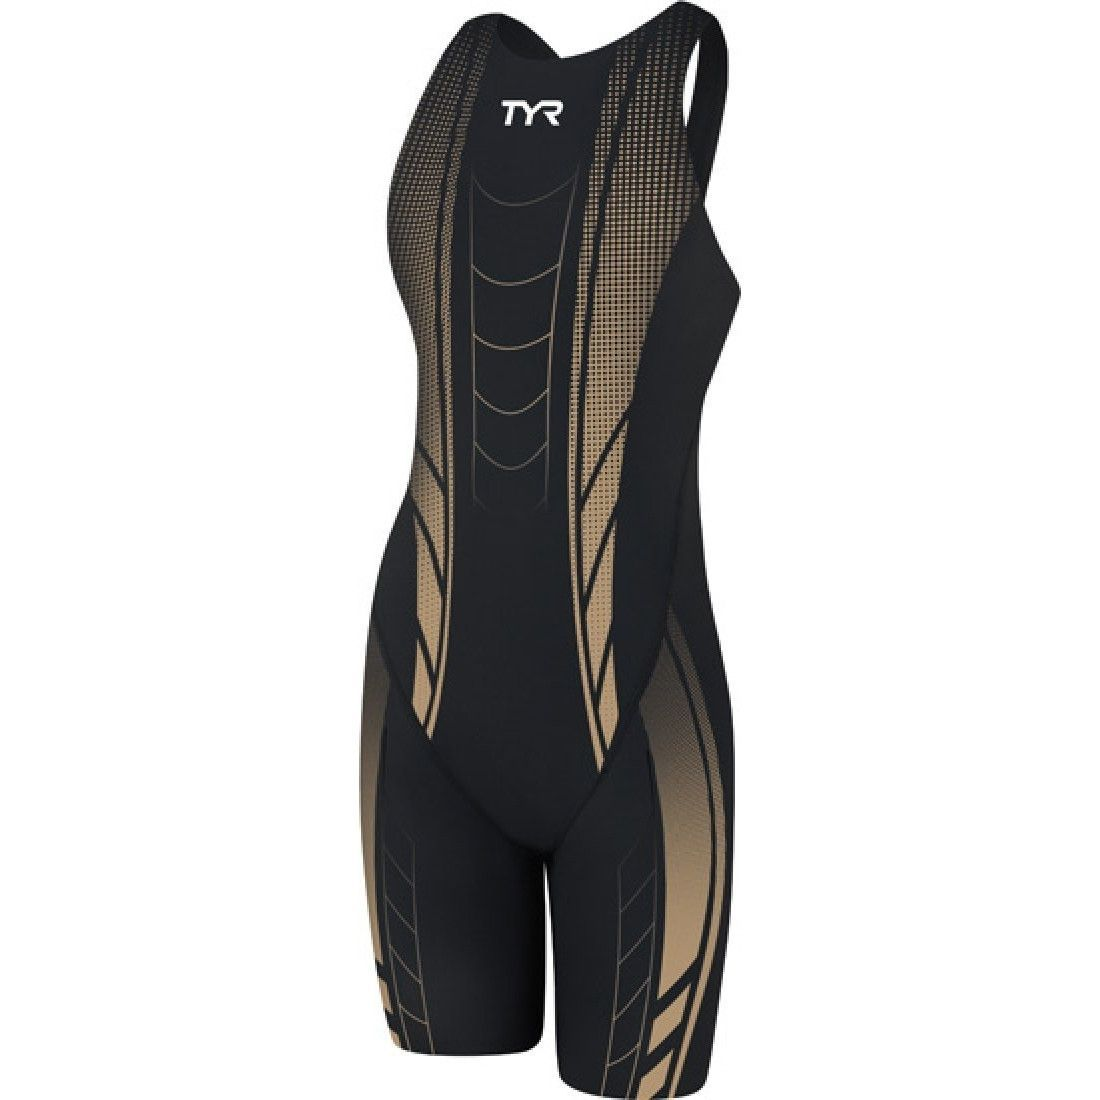 TYR AP12 Open Back Speed Suit